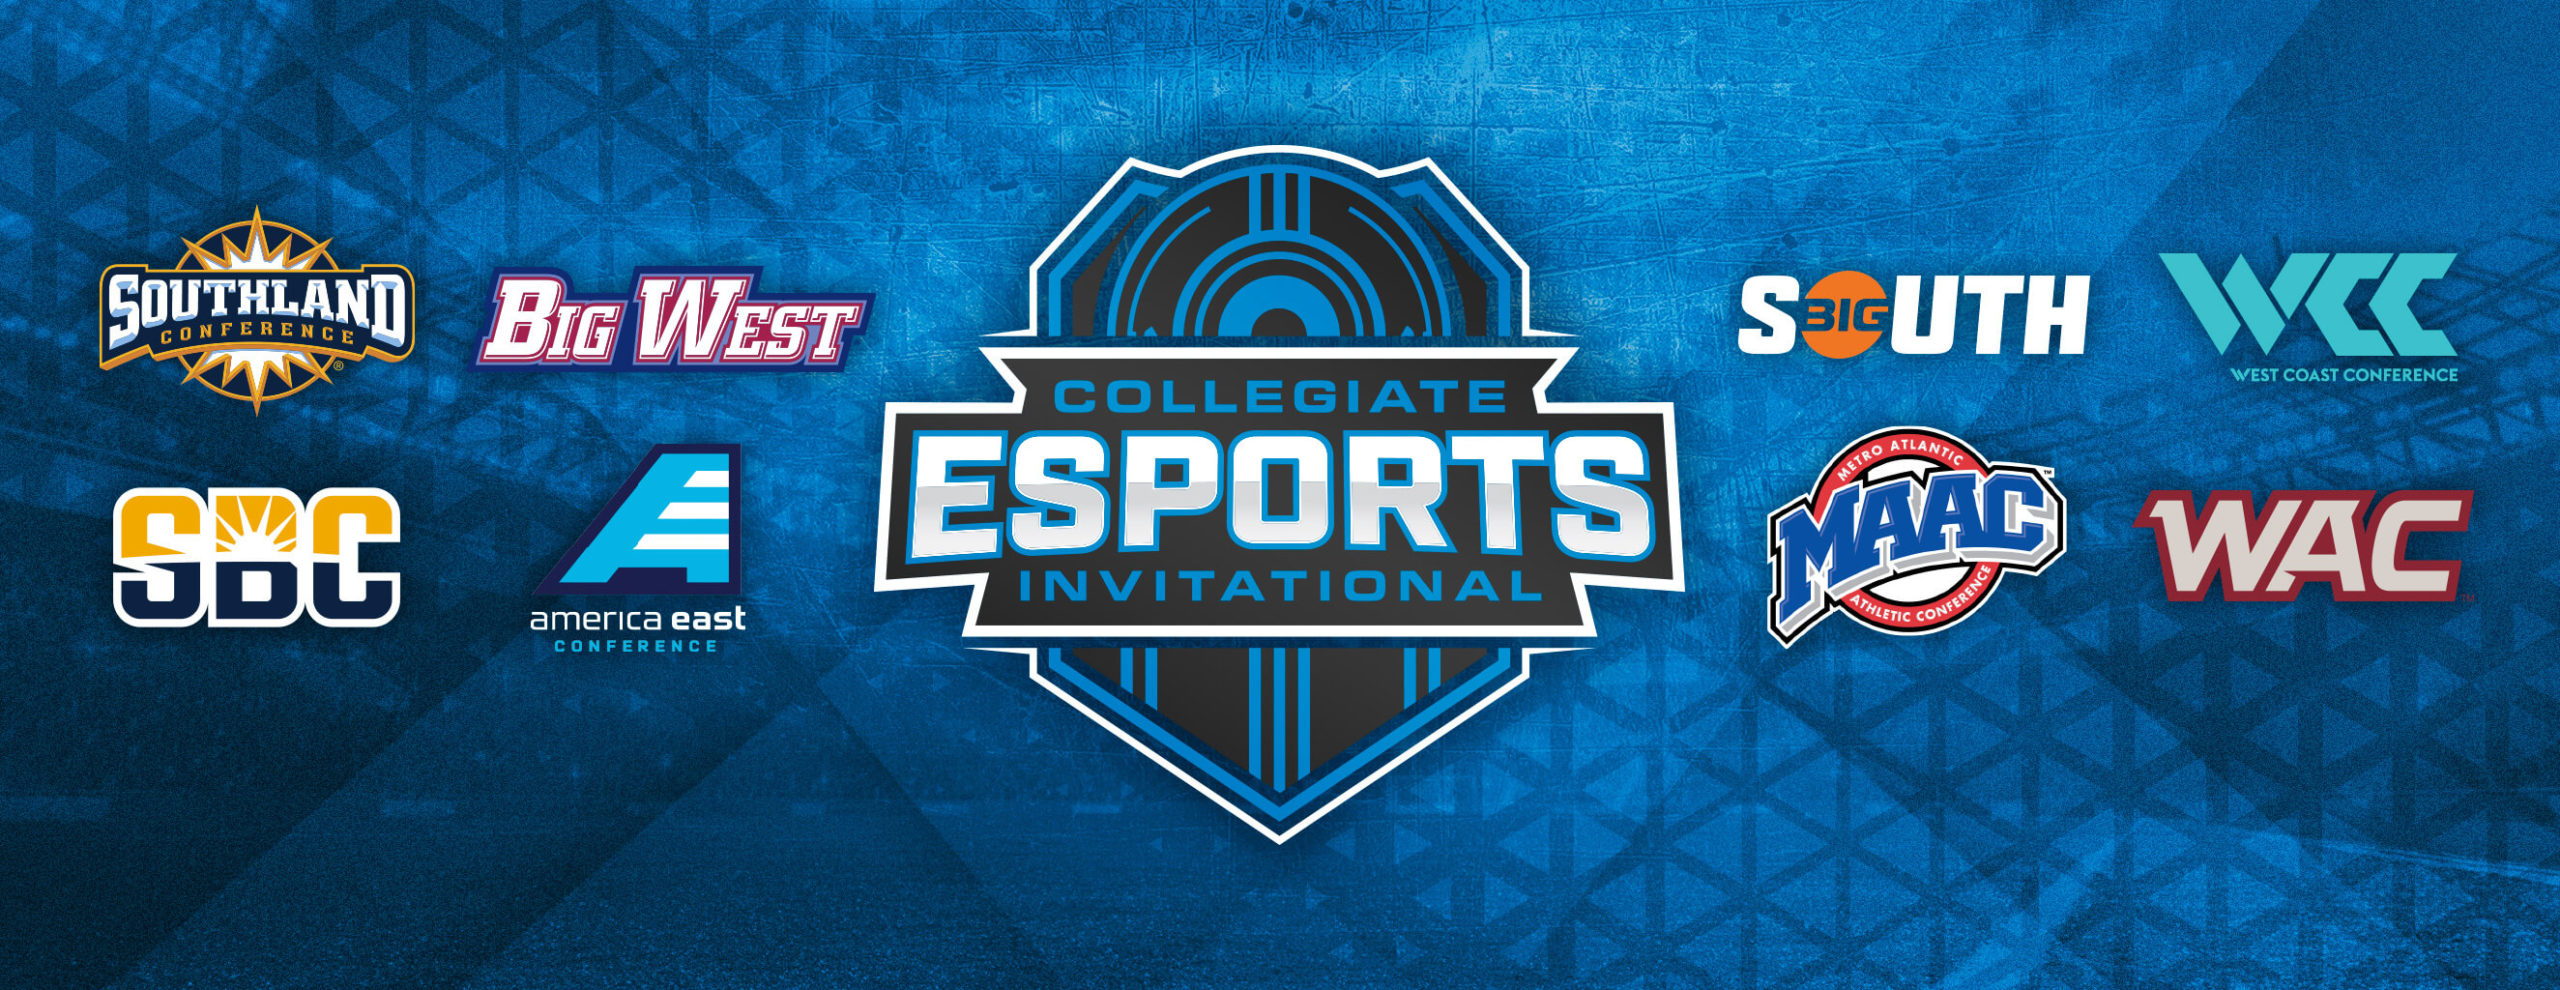 Van Wagner and Mainline Partner On New Eight-Conference Collegiate Esports Invitational